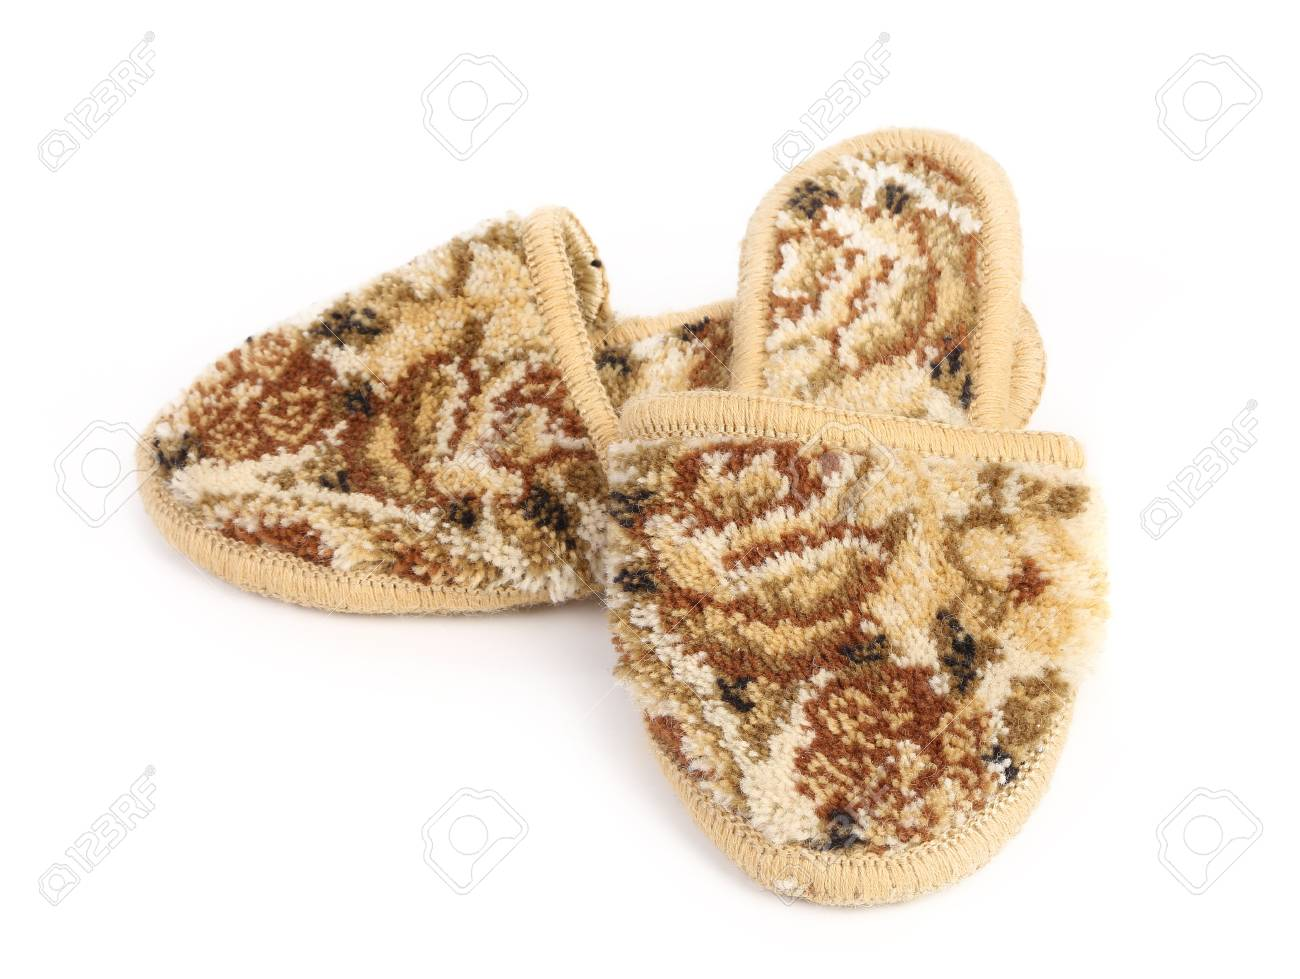 Pair of slippers on a white background Stock Photo - 21993886